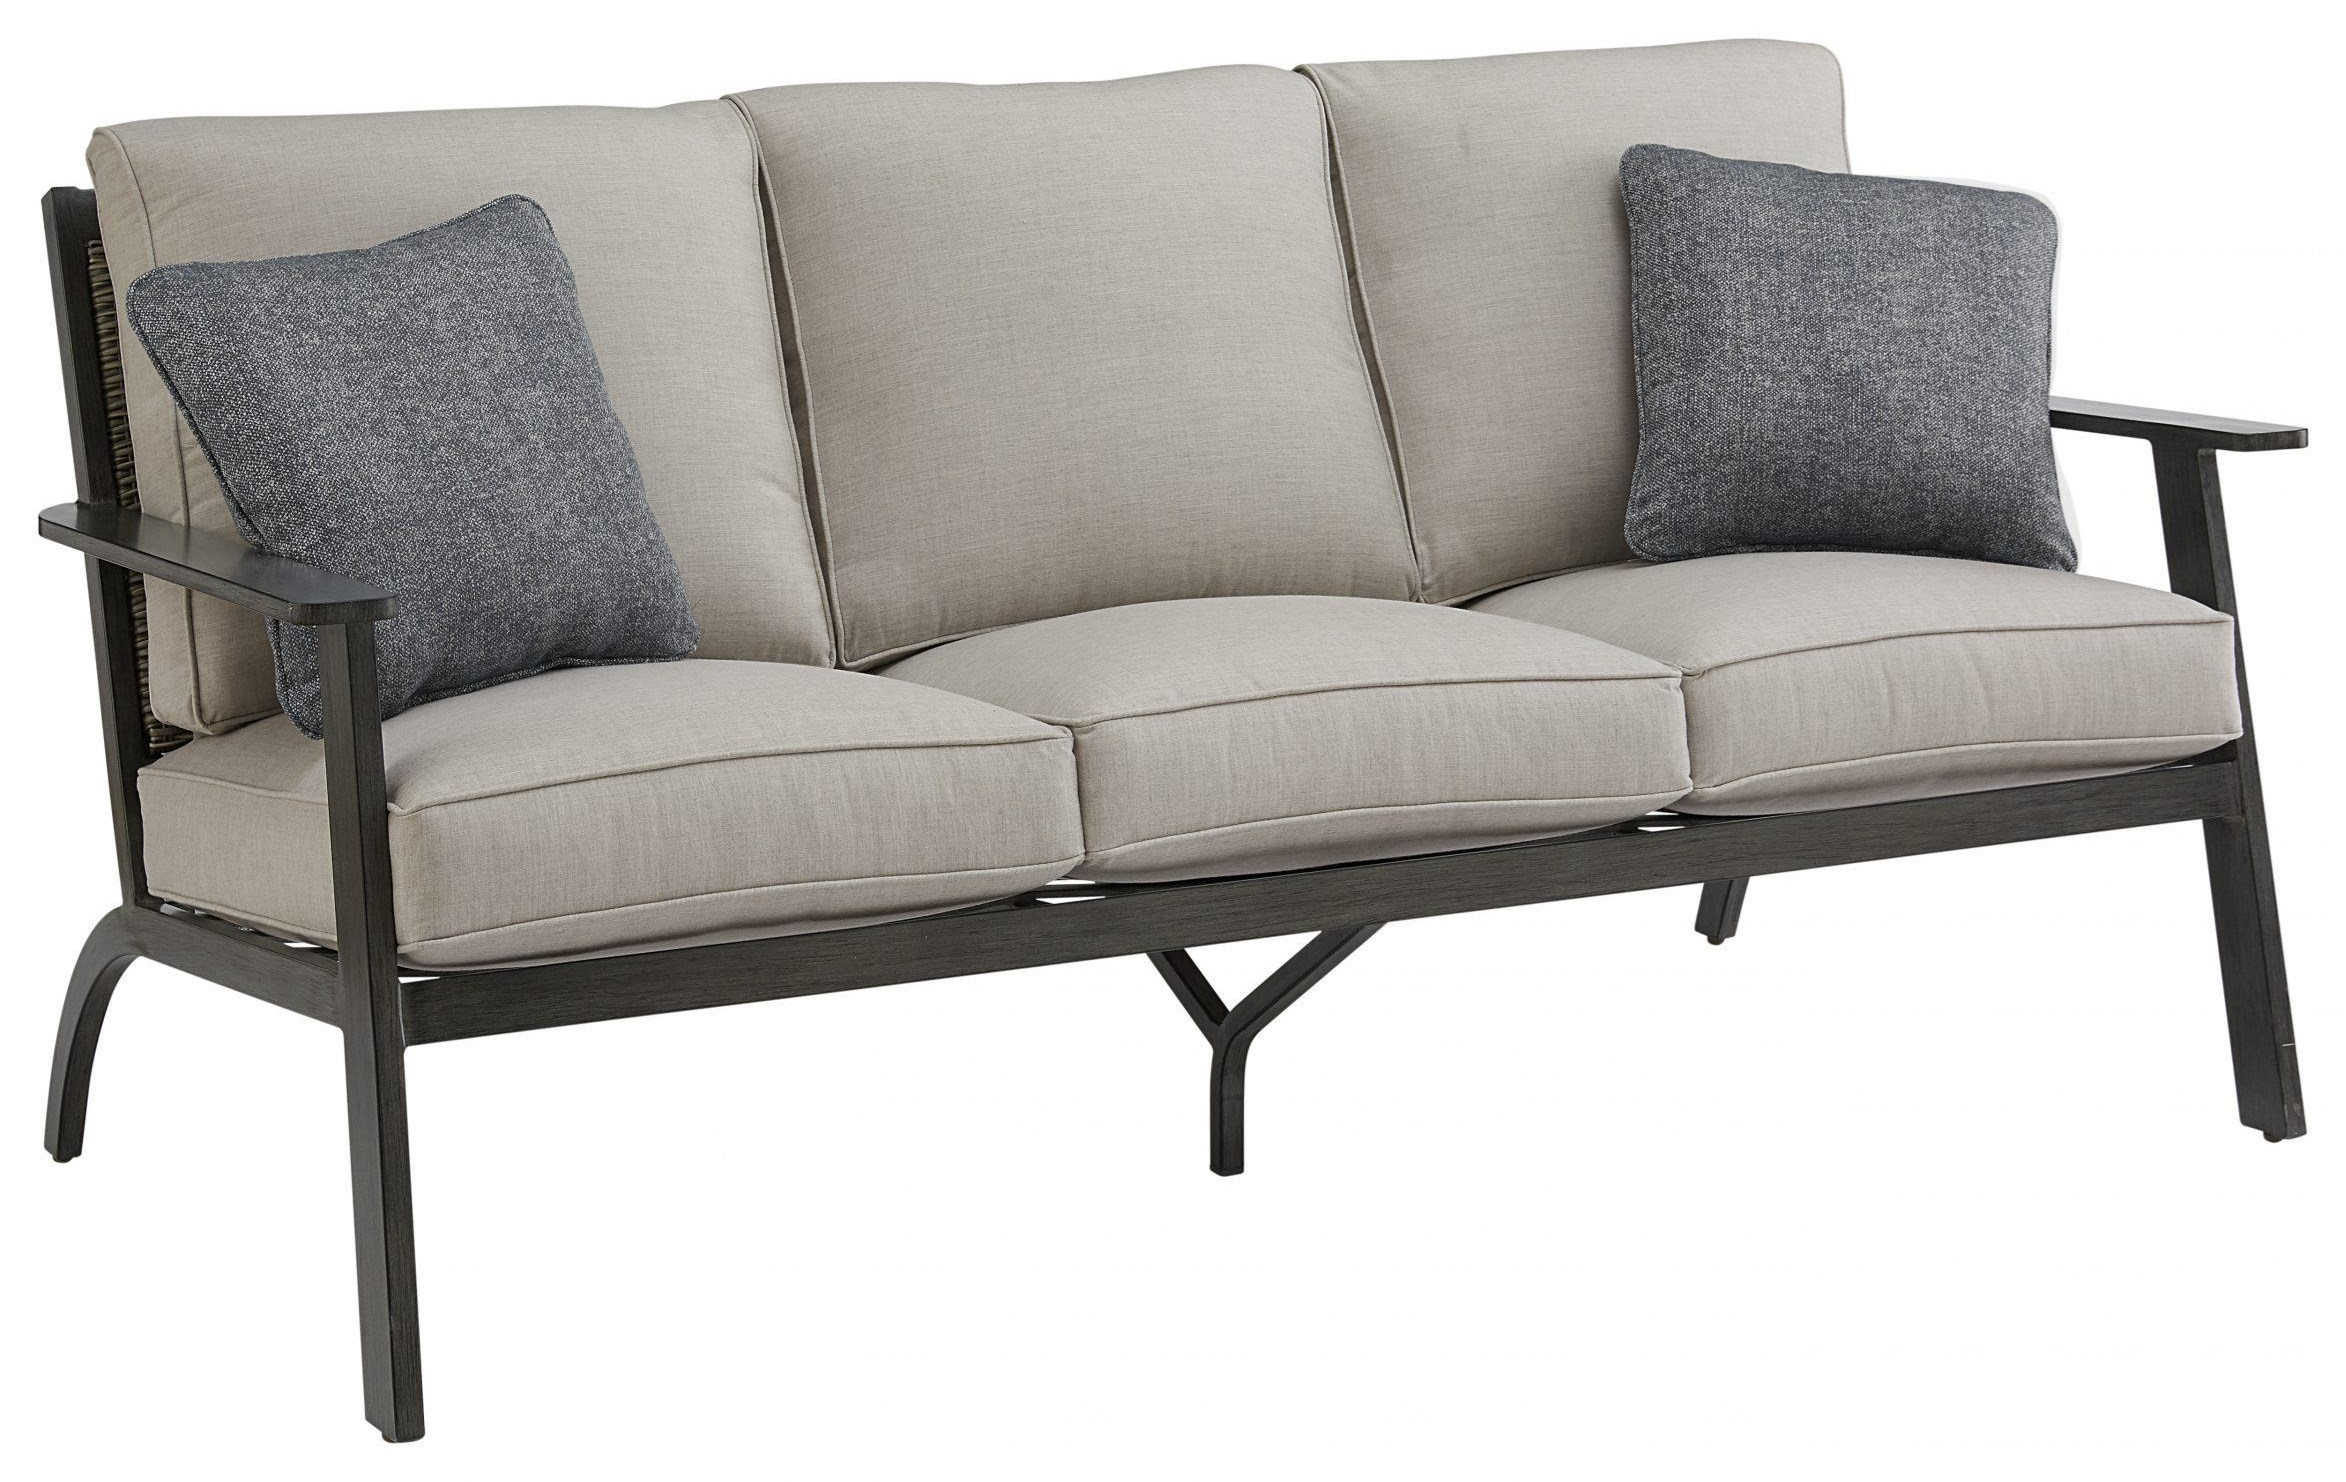 Adison Sofa with 2 Pillow by Apricity Outdoor at Johnny Janosik